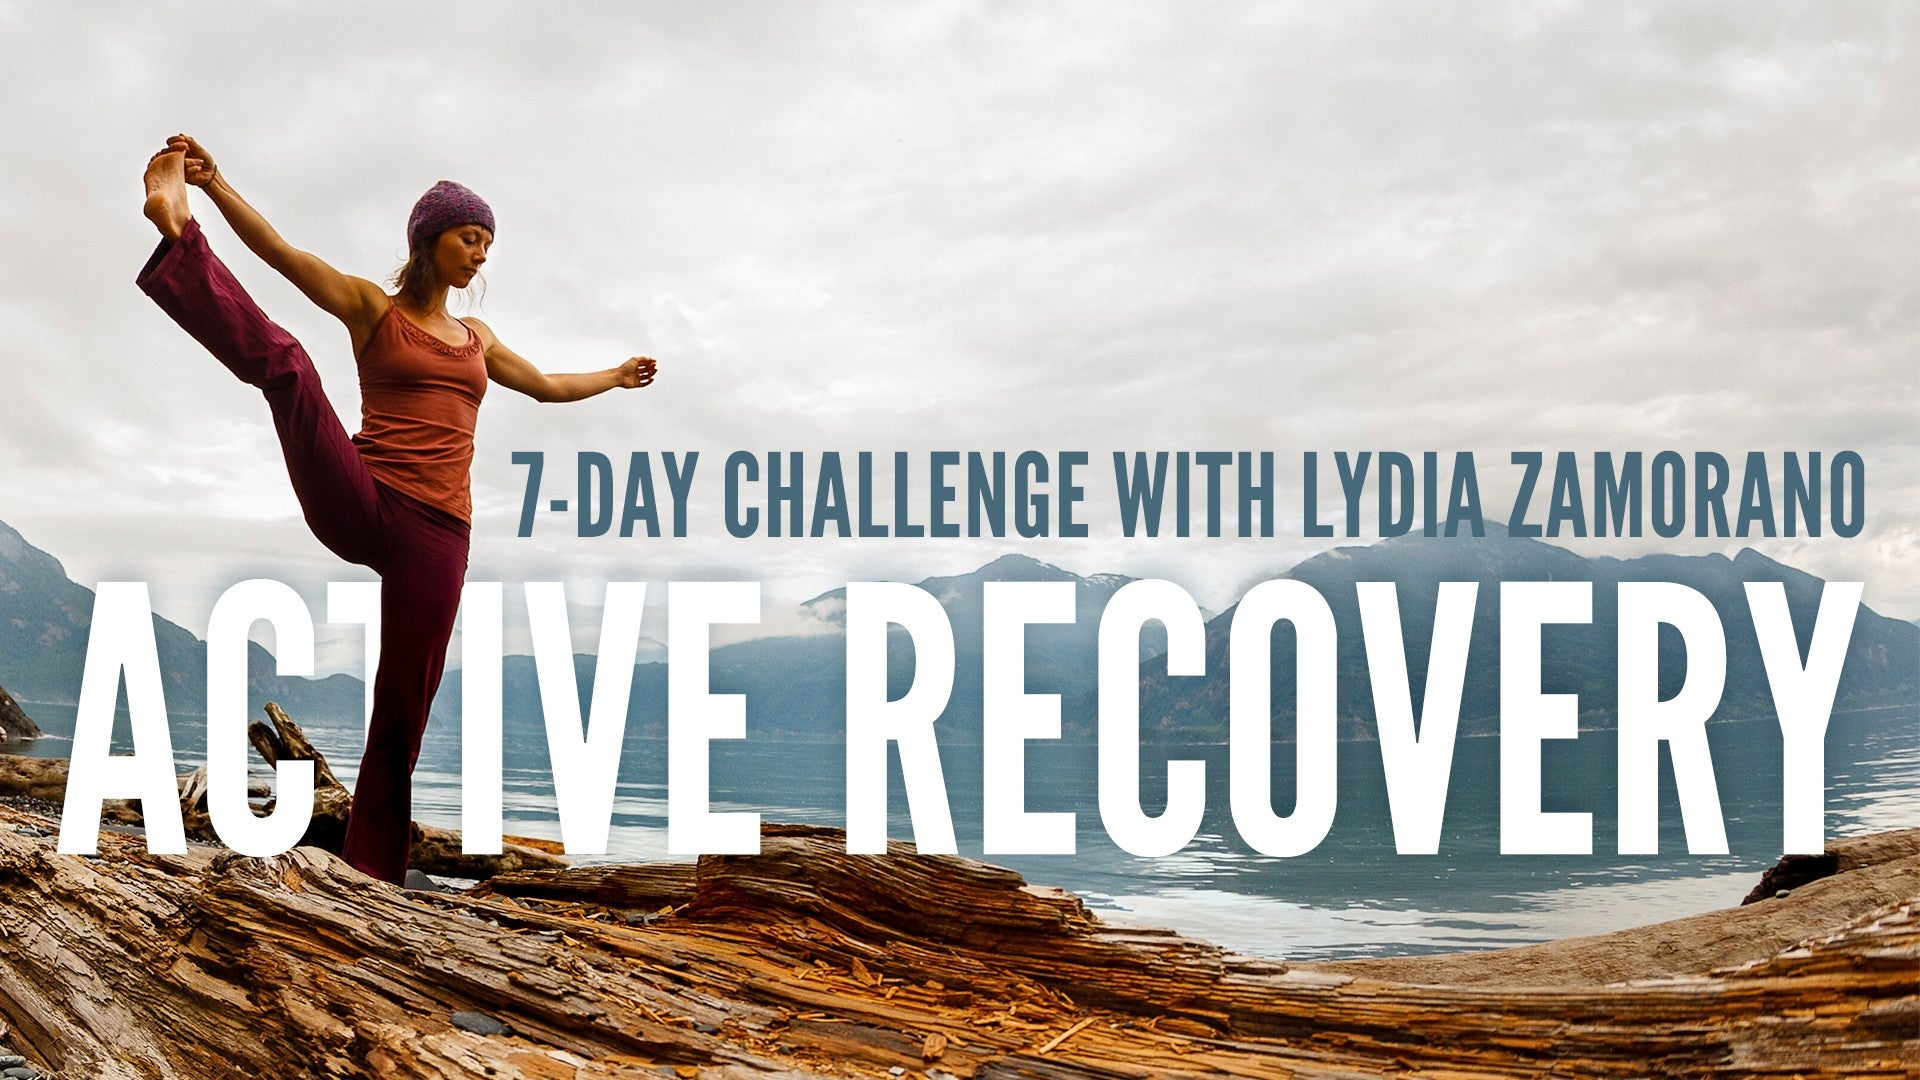 Active Recovery Yoga Challenge Artwork